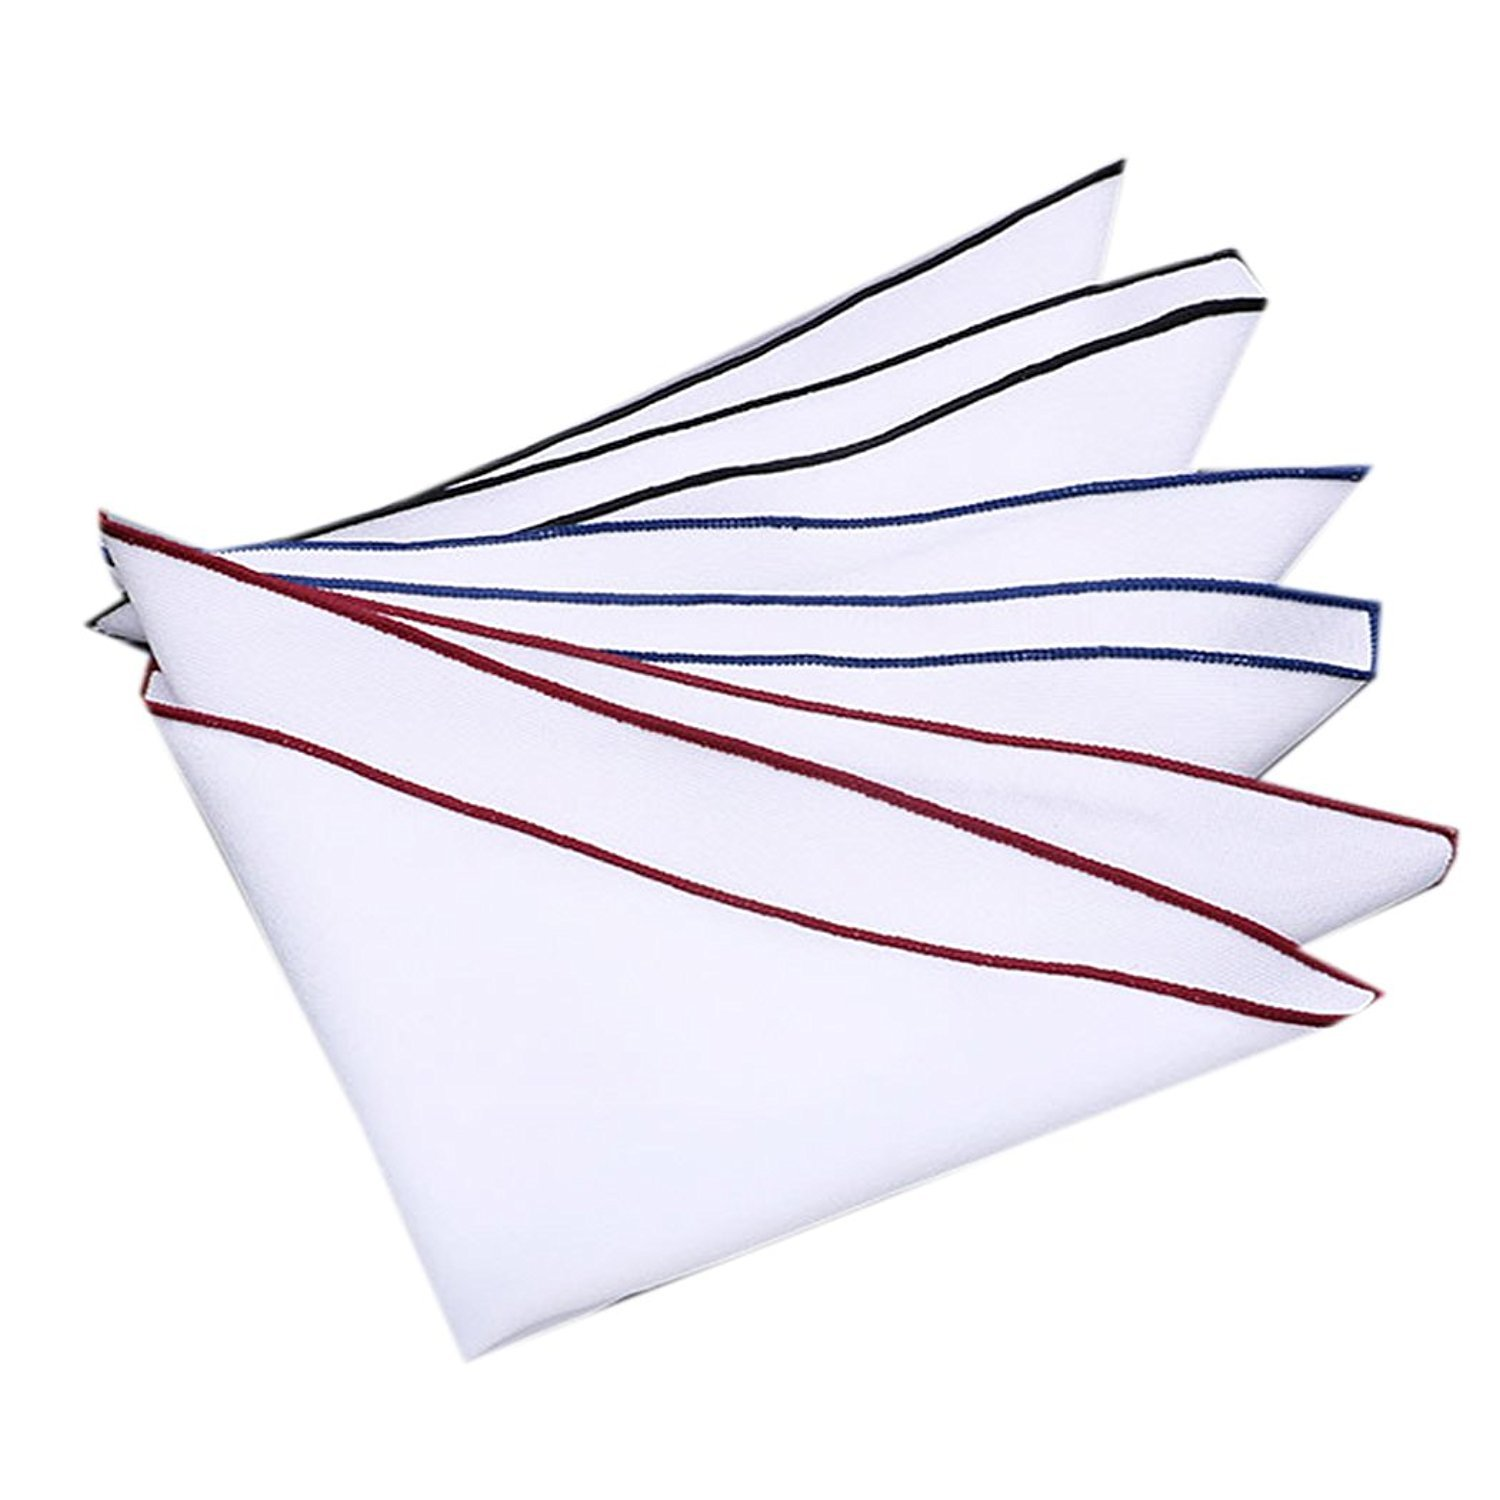 Mens White Pocket Square 100% Cotton- Pack of 3 (Burgundy+Navy Blue+Black Borders)